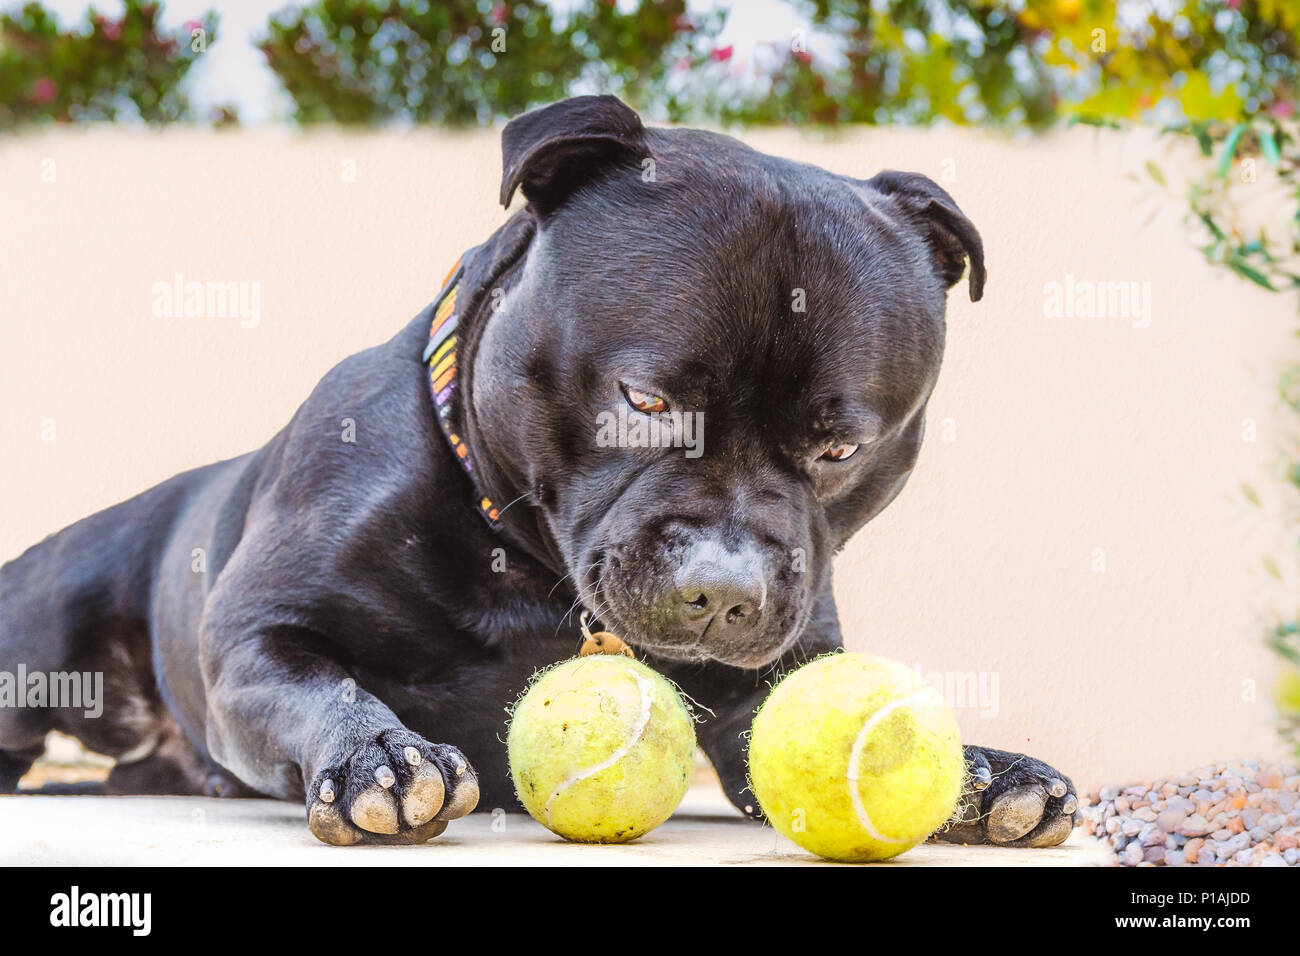 black relaxed staffordshire bull terrier dog lying down outside looking at two tennis balls trying decide which to select. - Stock Image